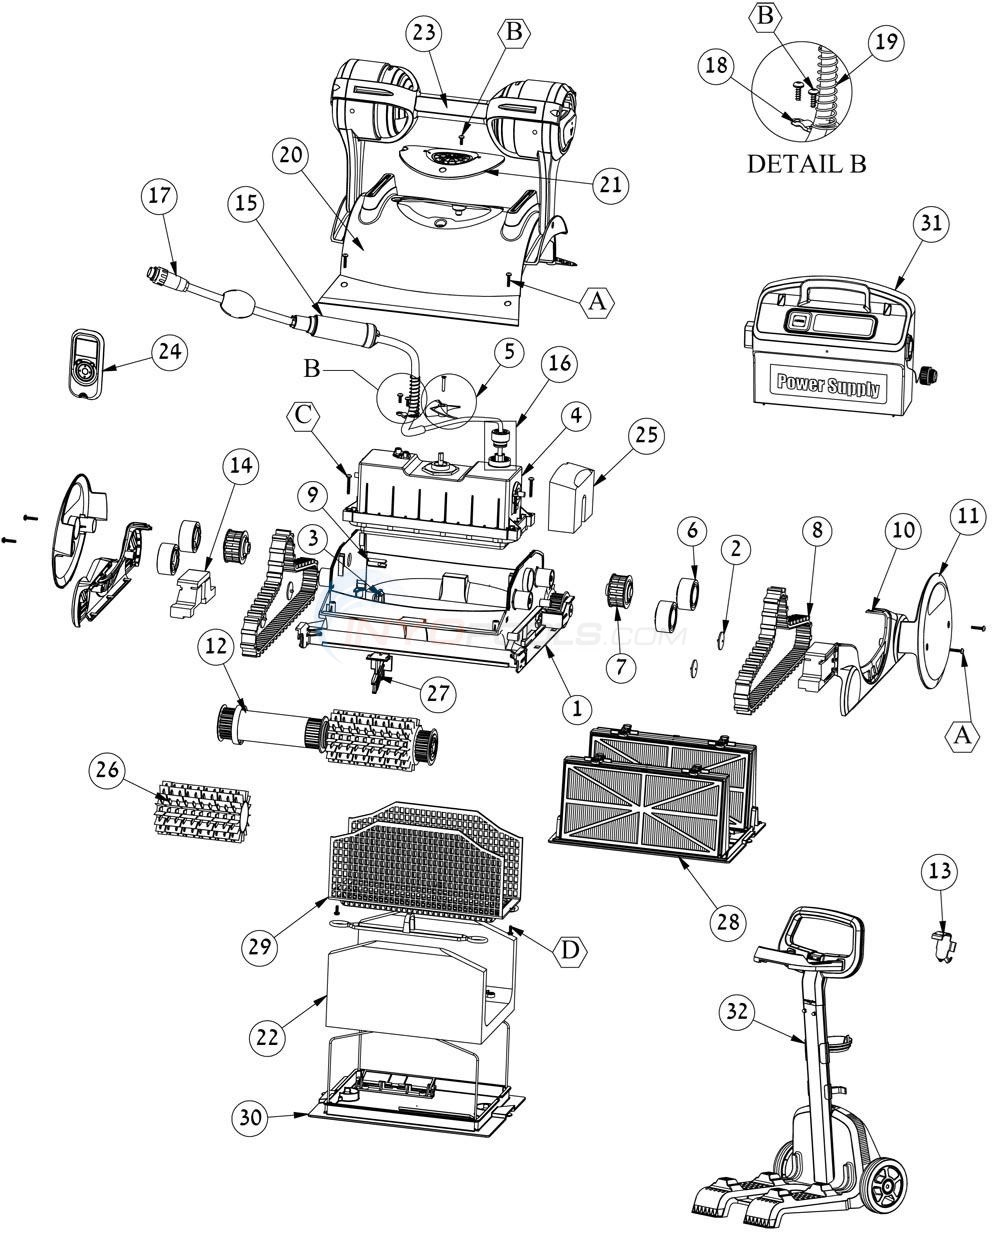 Maytronics Dolphin Wave 75 Parts Pool Cleaner Wiring Diagram